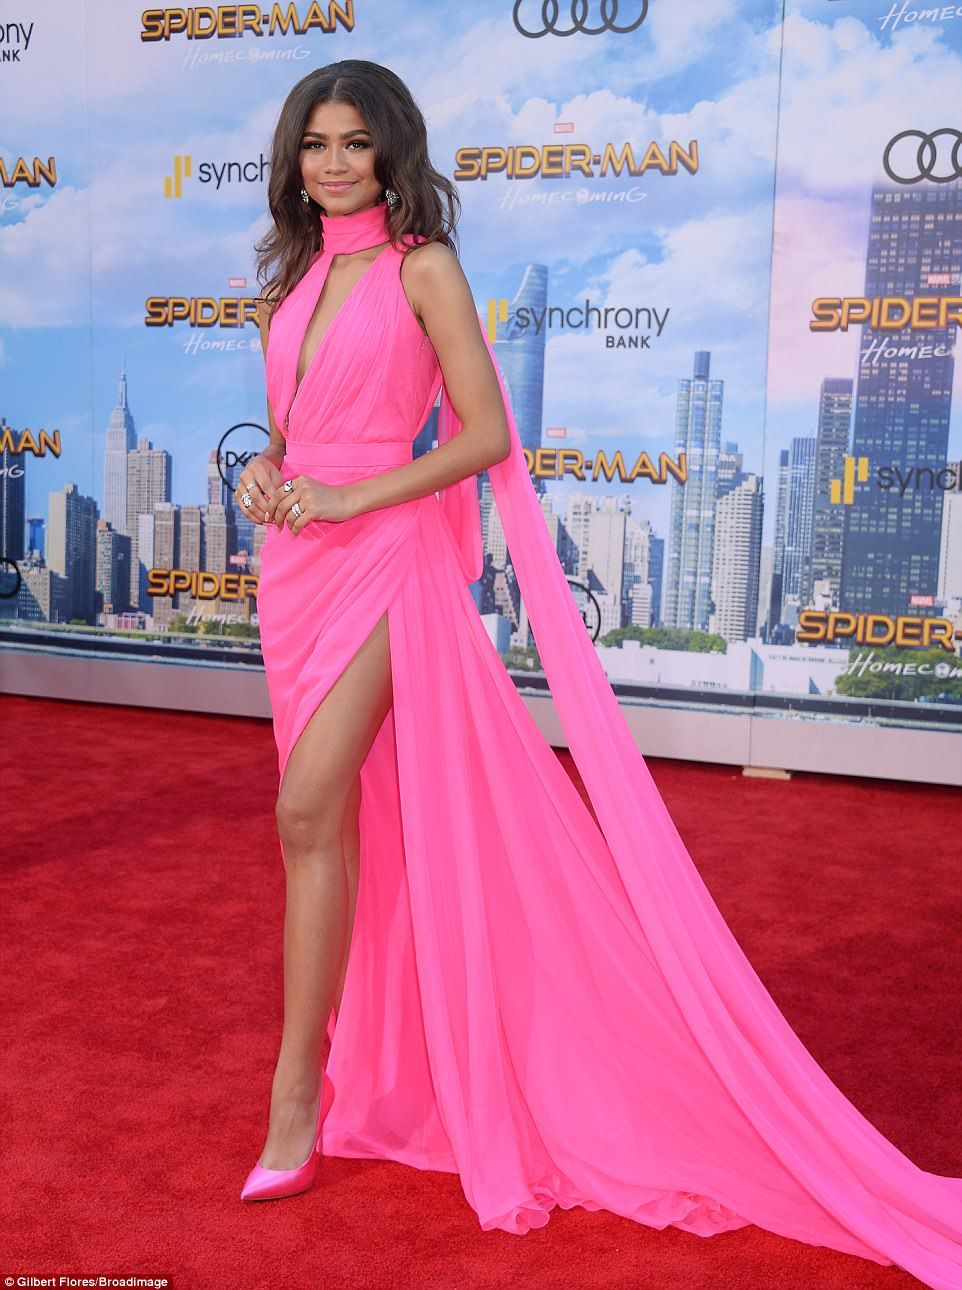 Zendaya dazzles in flowing pink gown with thigh slit at spiderman